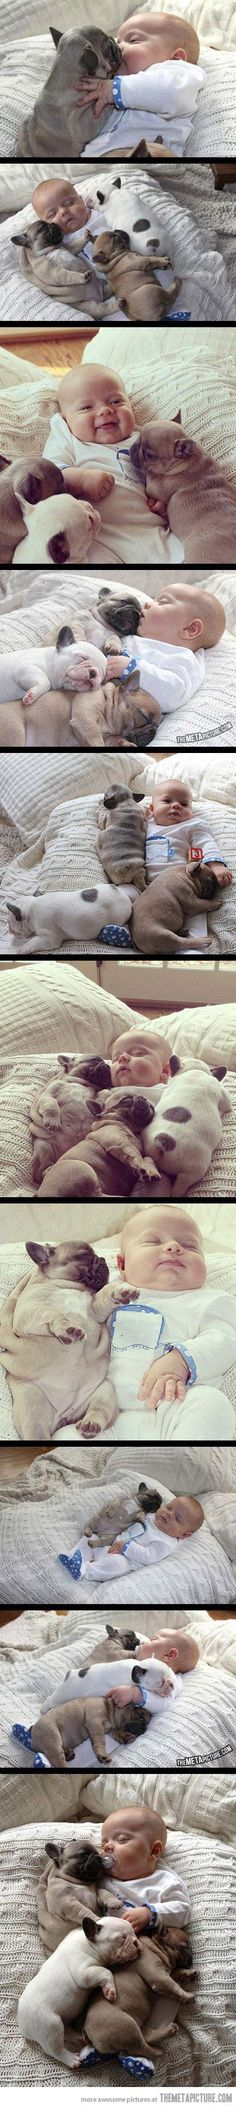 The cuteness of it all!